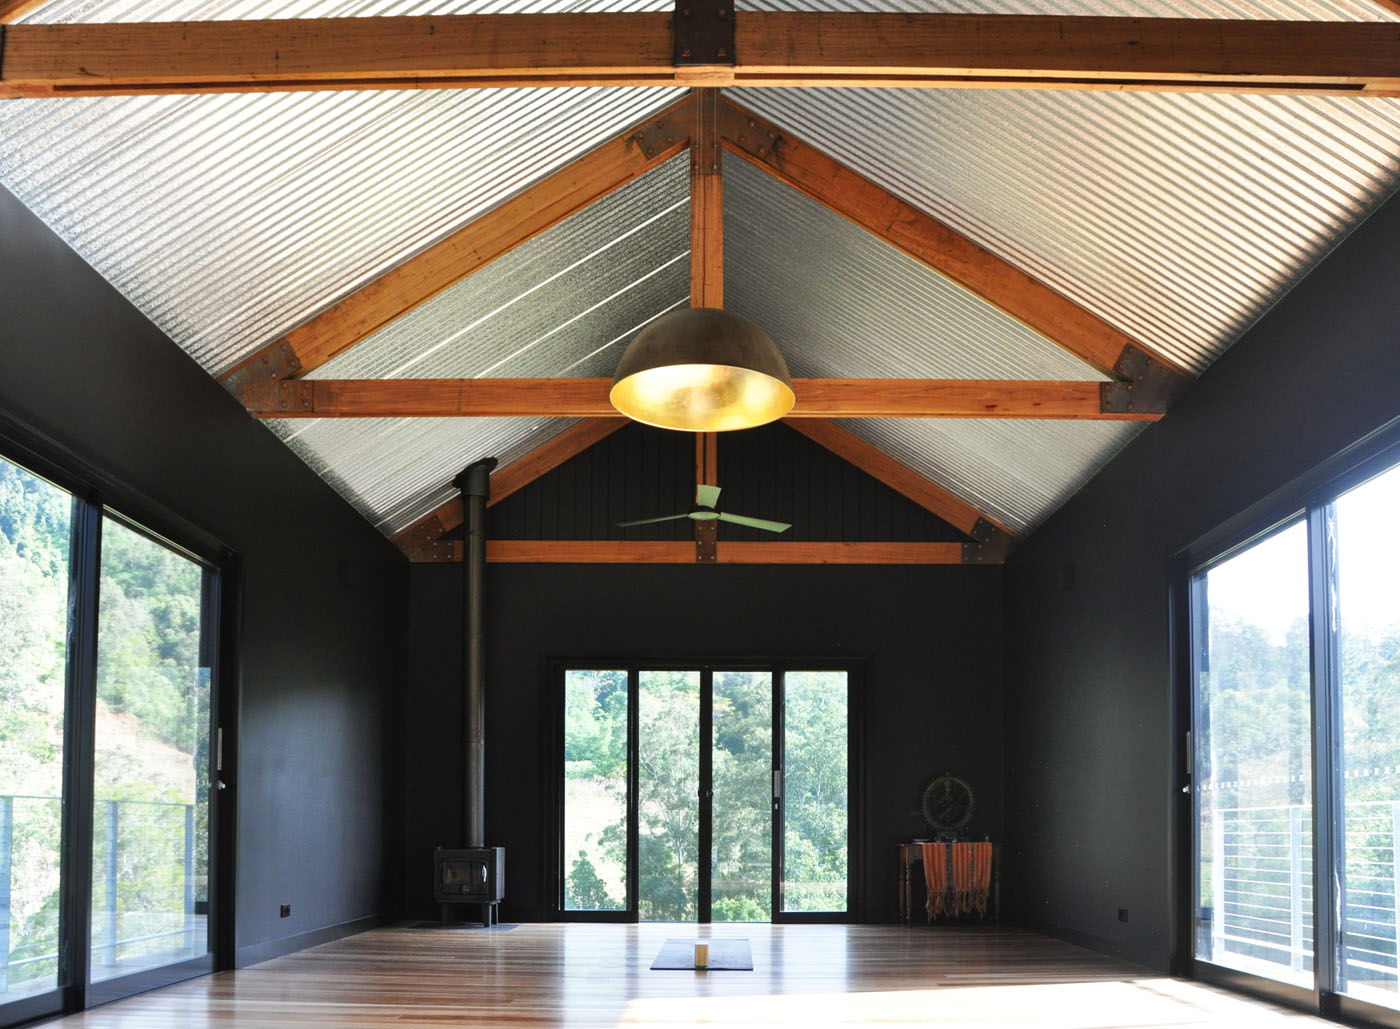 Gloucester Farmhouse by award winning residential architecture firm Sam Crawford Architects. Exposed structure and strong material palette brings an industrial feel to the farmhouse's interior